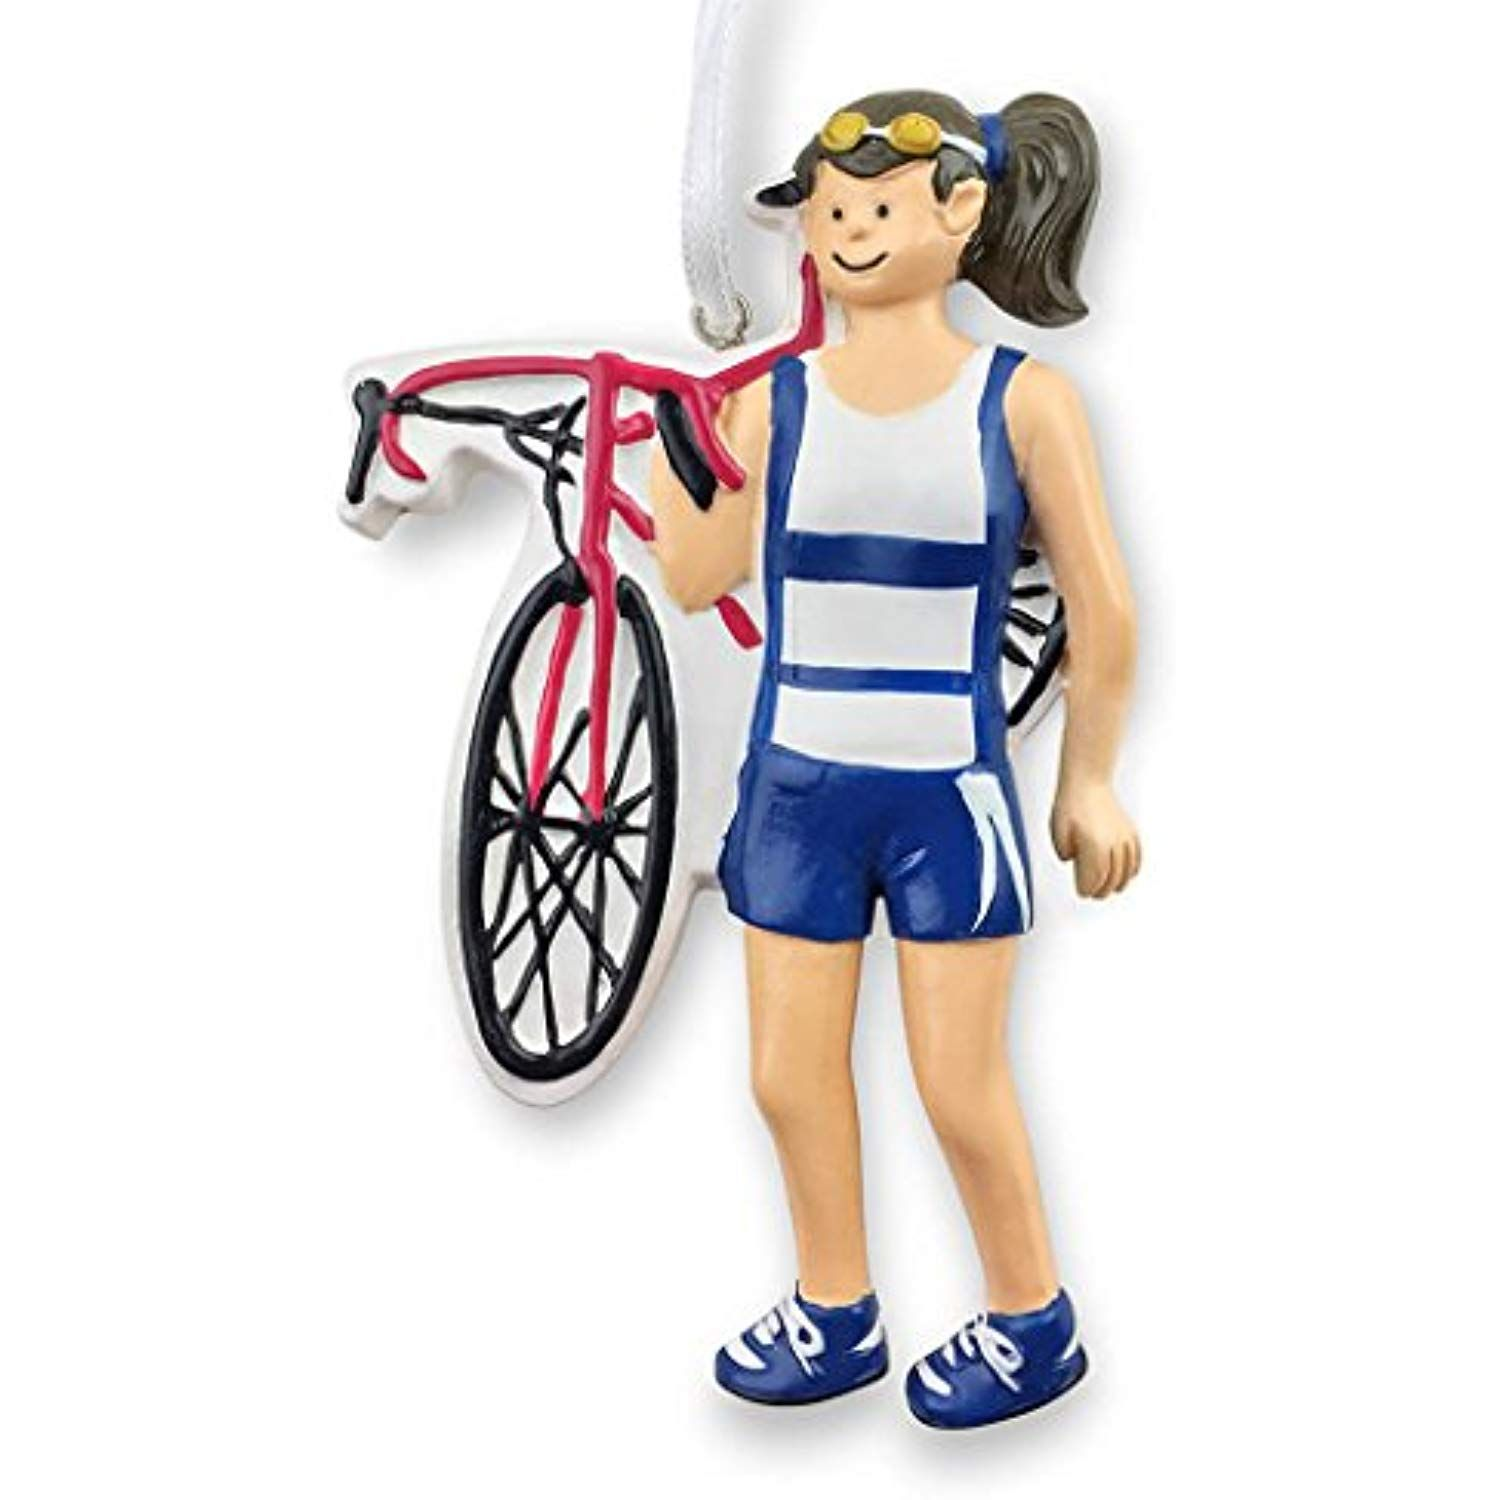 Gone For a Run Triathlete Christmas Ornament | Triathlon ...